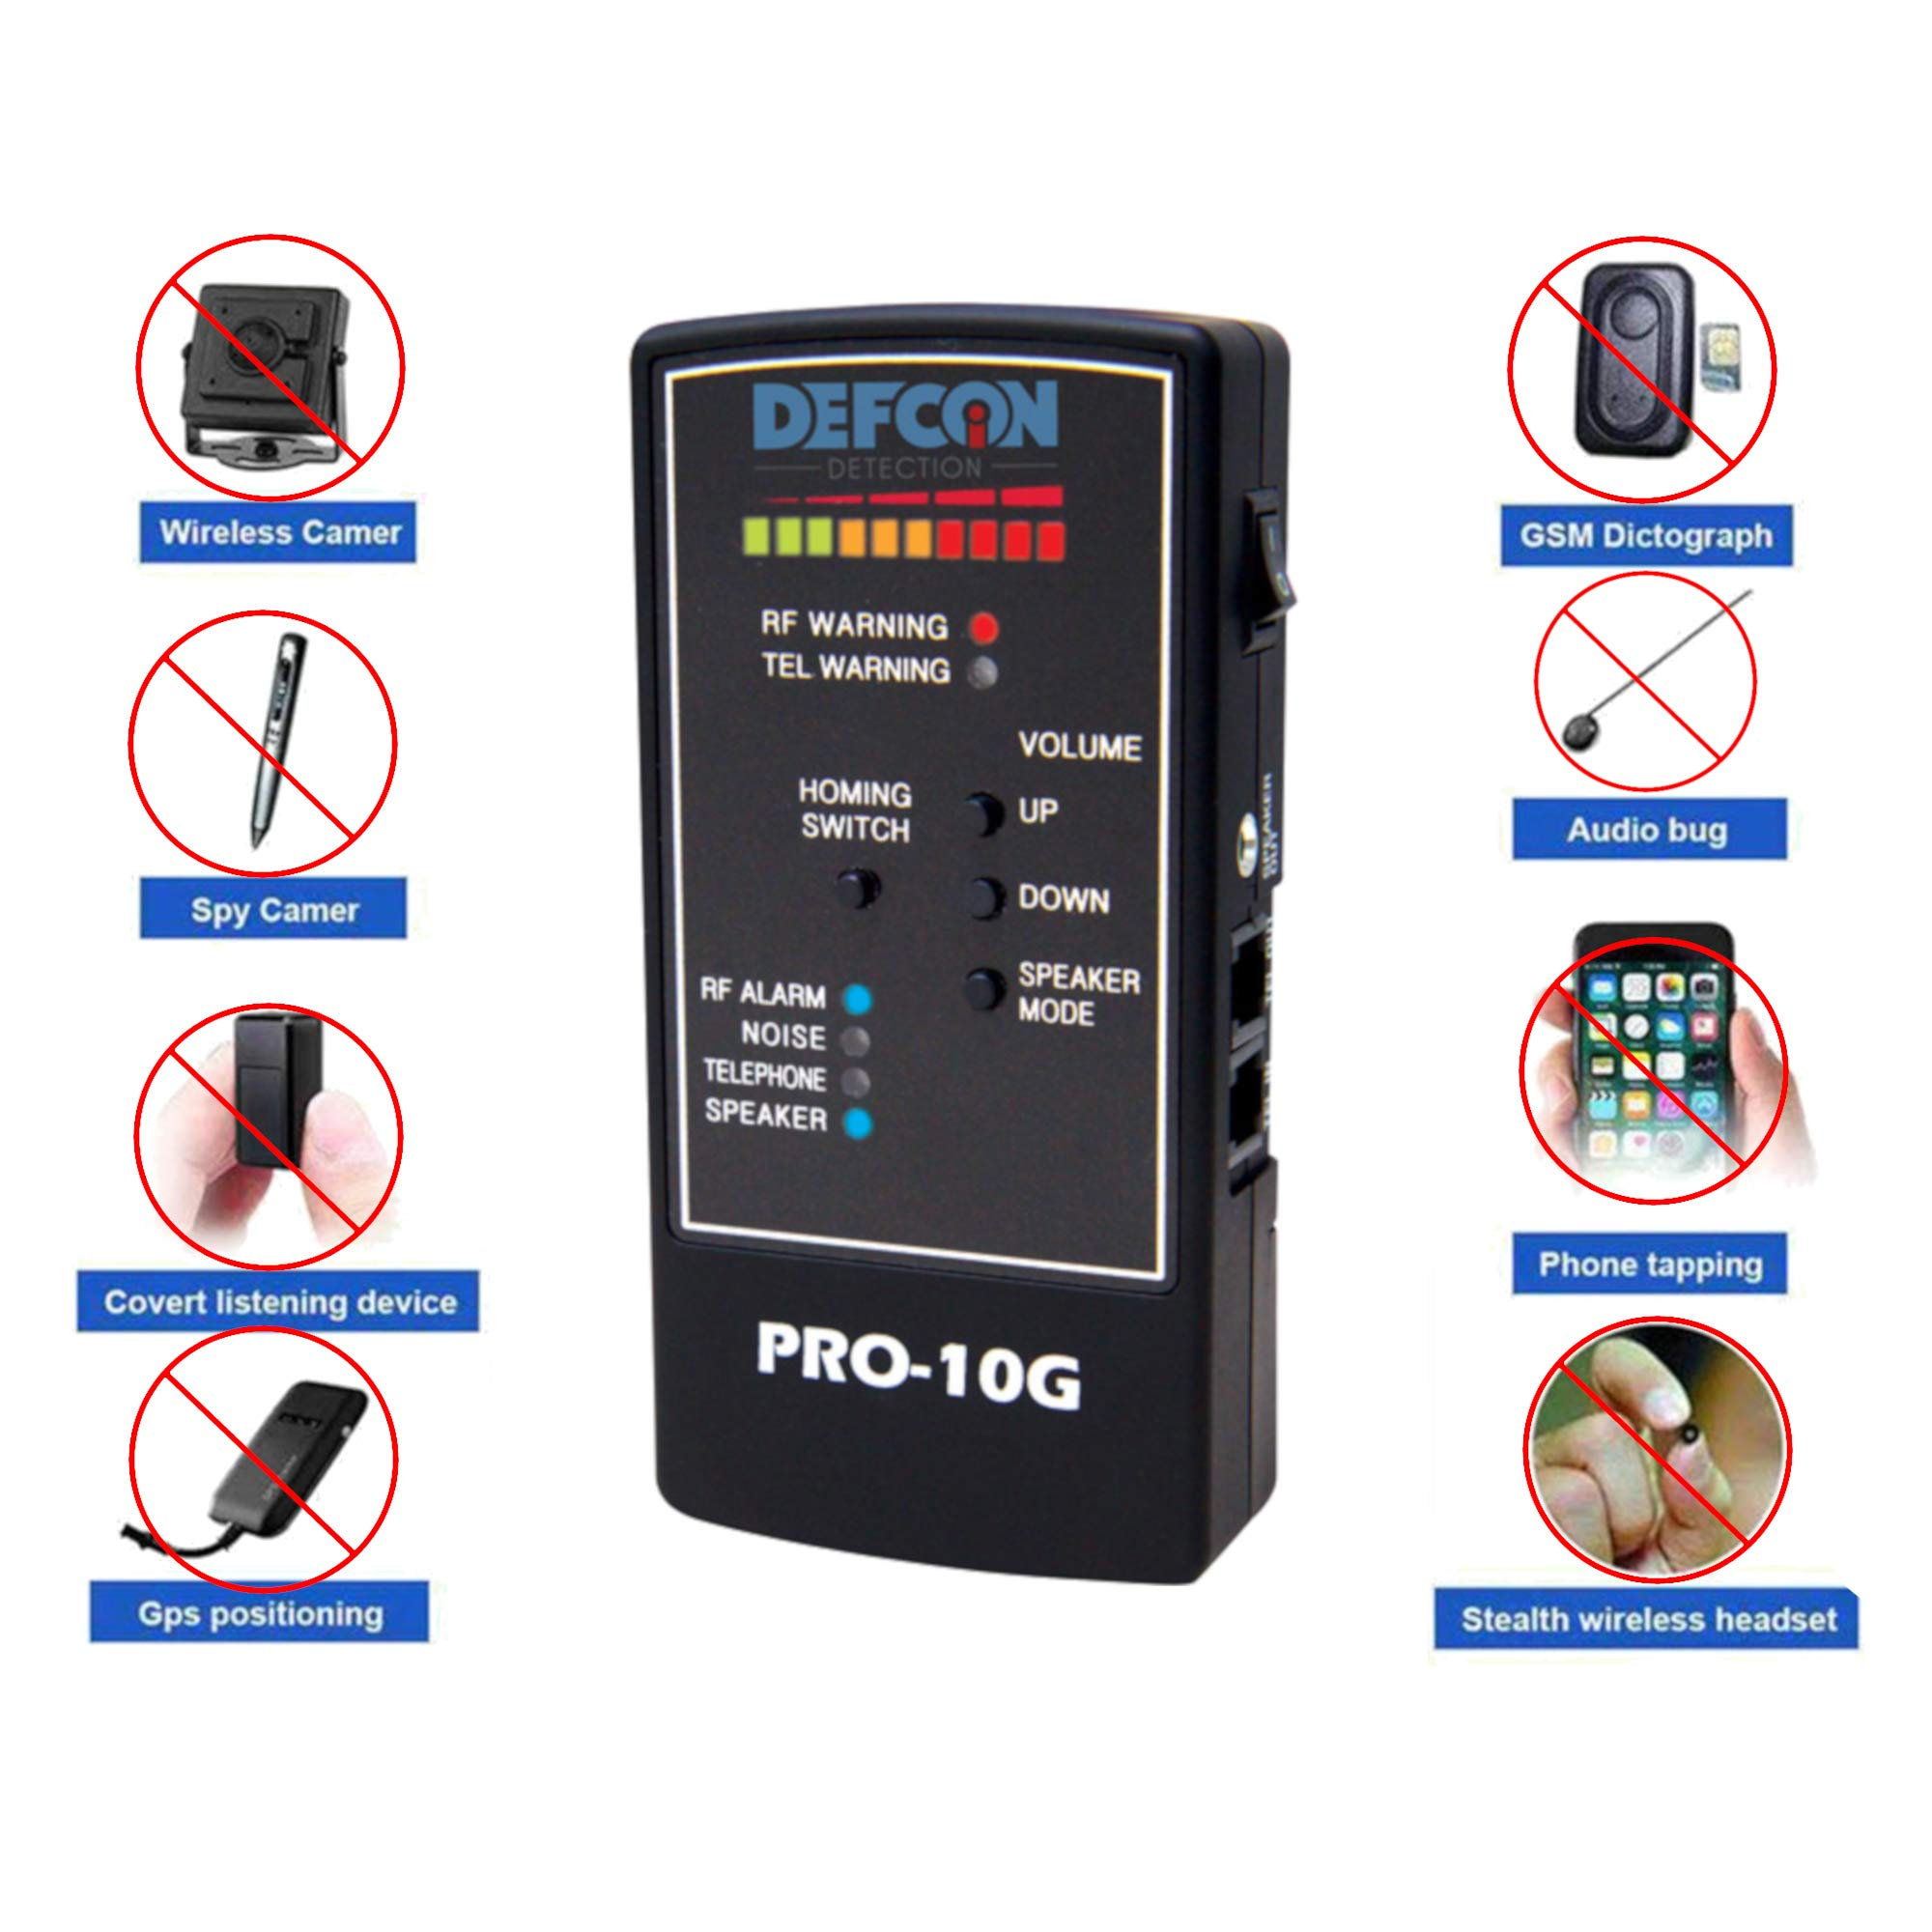 DefCon Security Products PRO-10G GPS Tracker Finder and Law-Grade Counter Surveillance Bug Sweep - Newest Professional Handheld Detection of All Active GPS Trackers, Mobile Phones